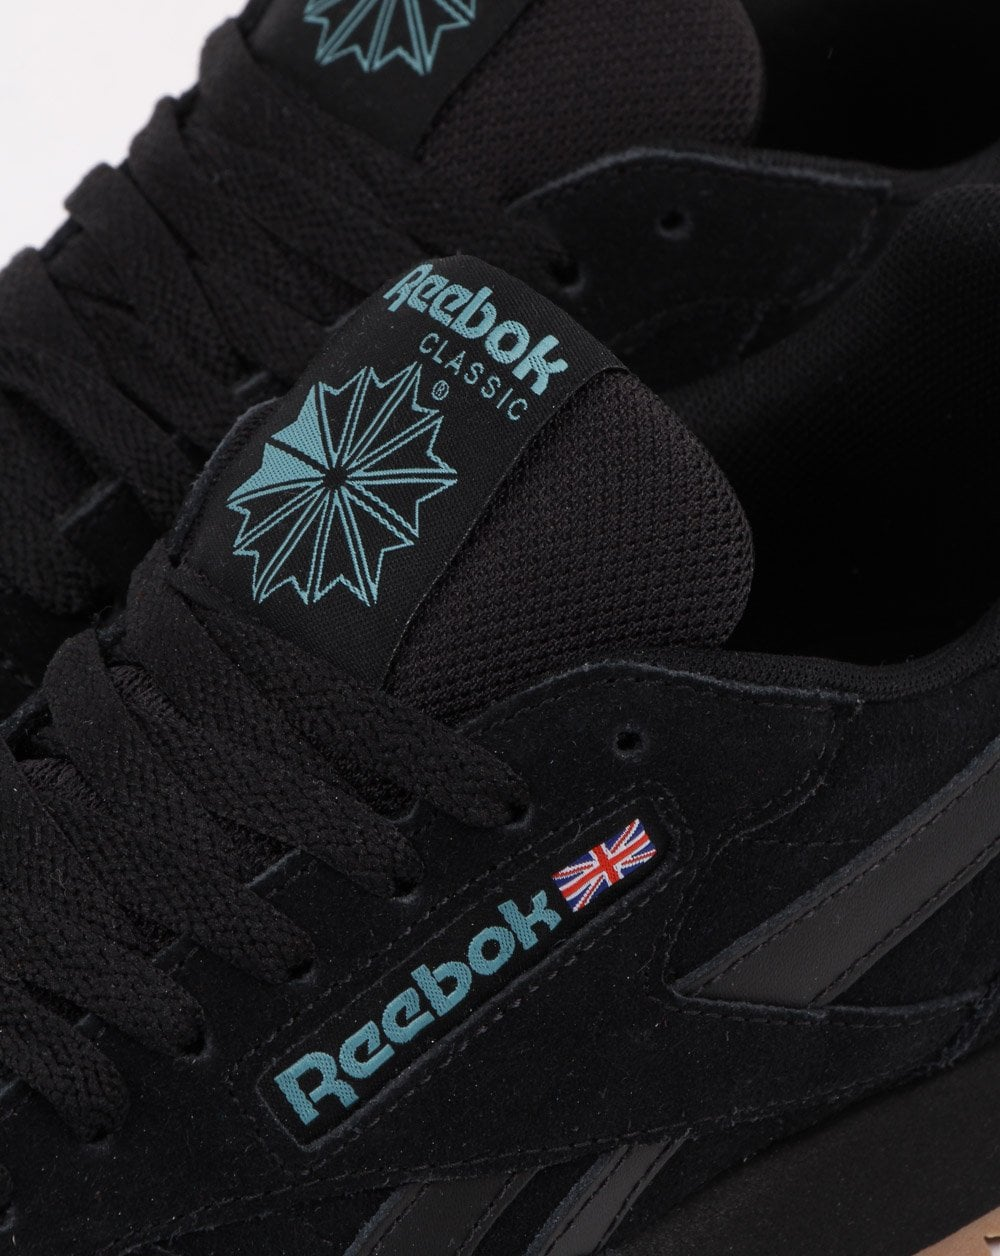 6617b844a295 Reebok Classic Leather Trainers in Black Mineral Mist